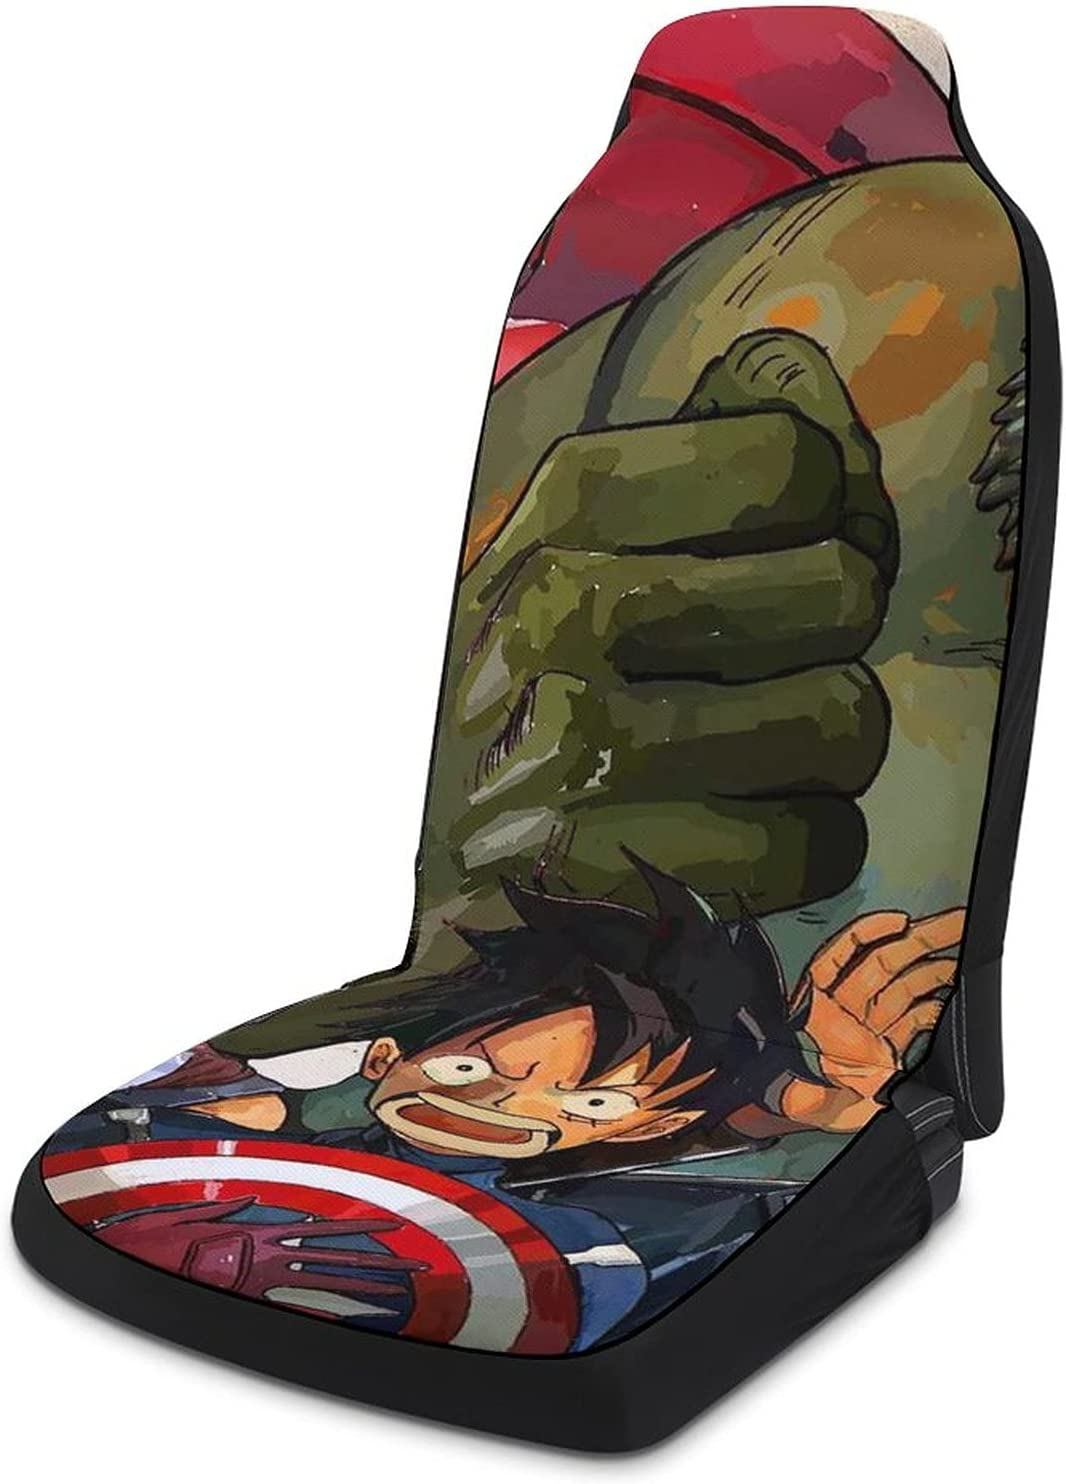 One Piece Avengers Front Seat Covers C Shipping included Full Women Sets Girly for Challenge the lowest price